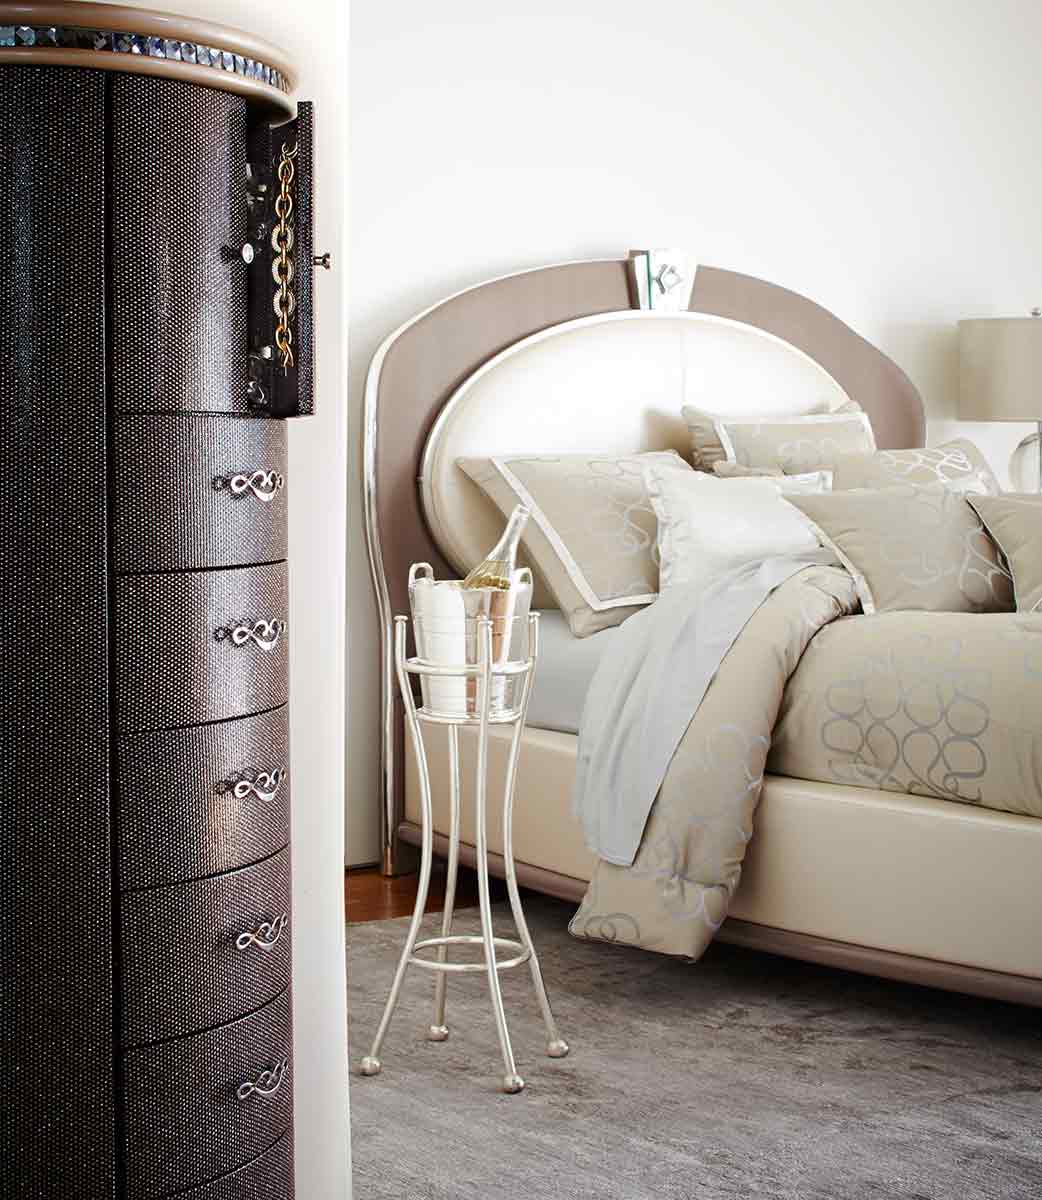 The Overture bedroom and chest of drawers